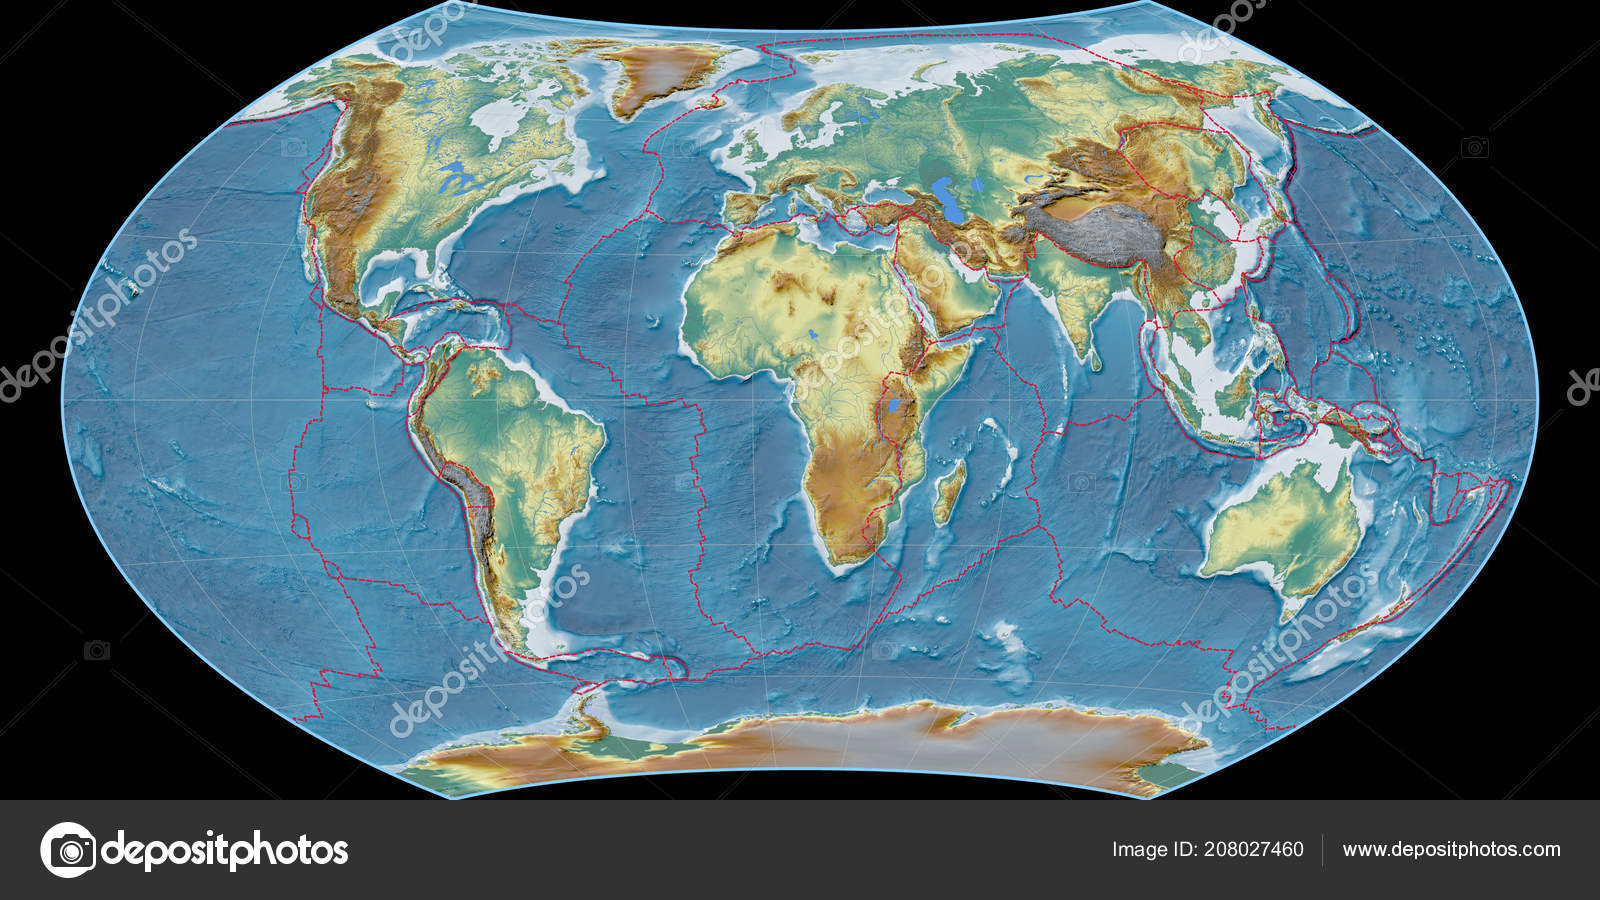 World map wagner viii projection centered east longitude topographic world map in the wagner viii projection centered on 11 east longitude topographic relief map composite of raster with graticule and tectonic plates gumiabroncs Choice Image